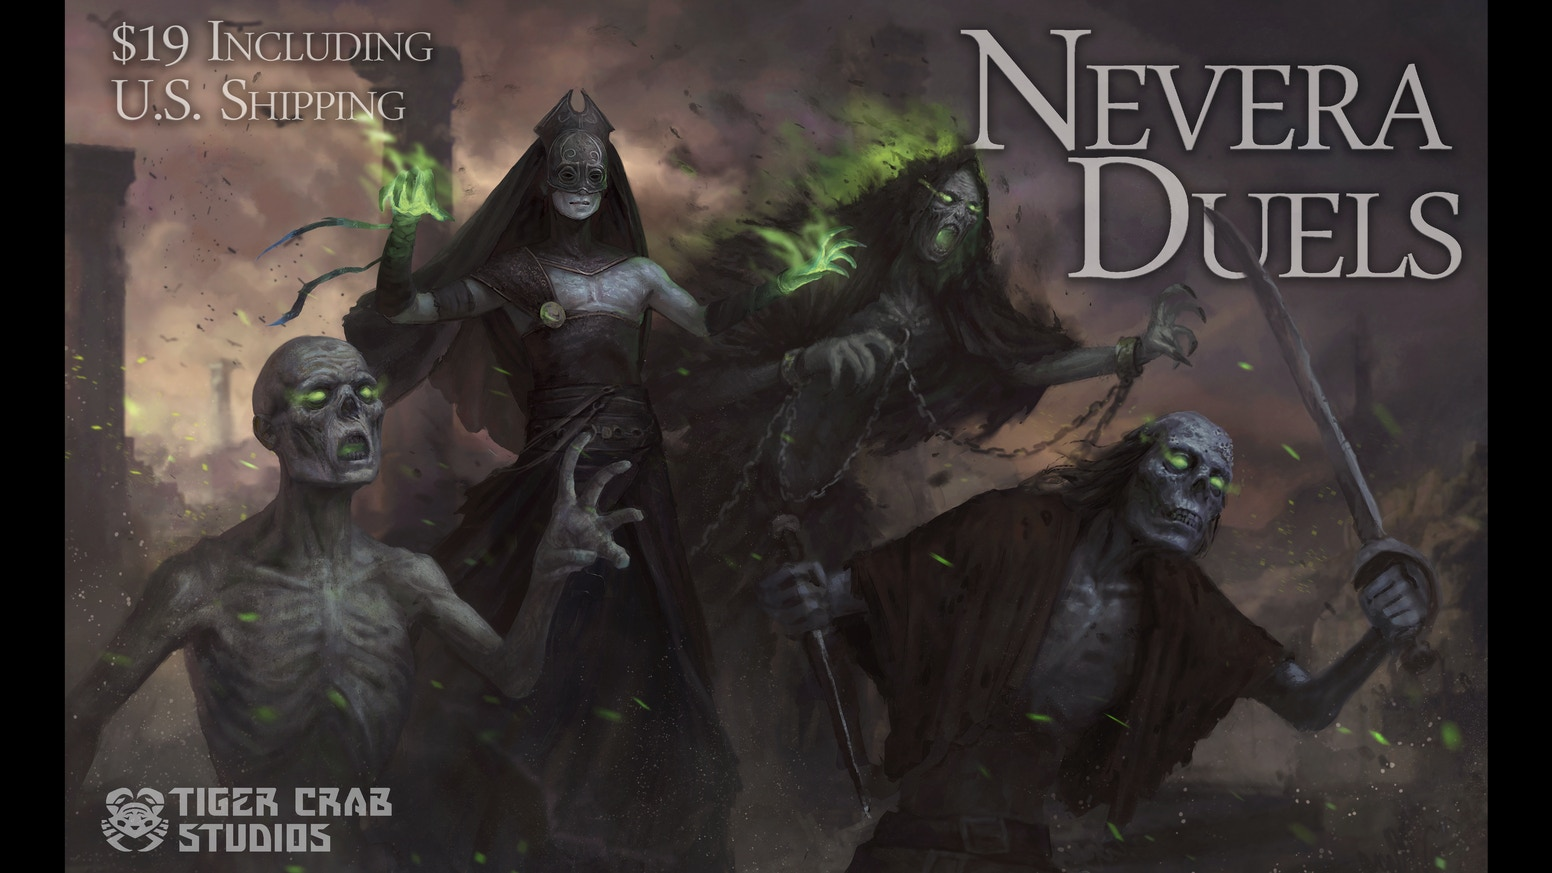 Nevera Duels: A Necromancer Card Game by Tiger Crab Studios